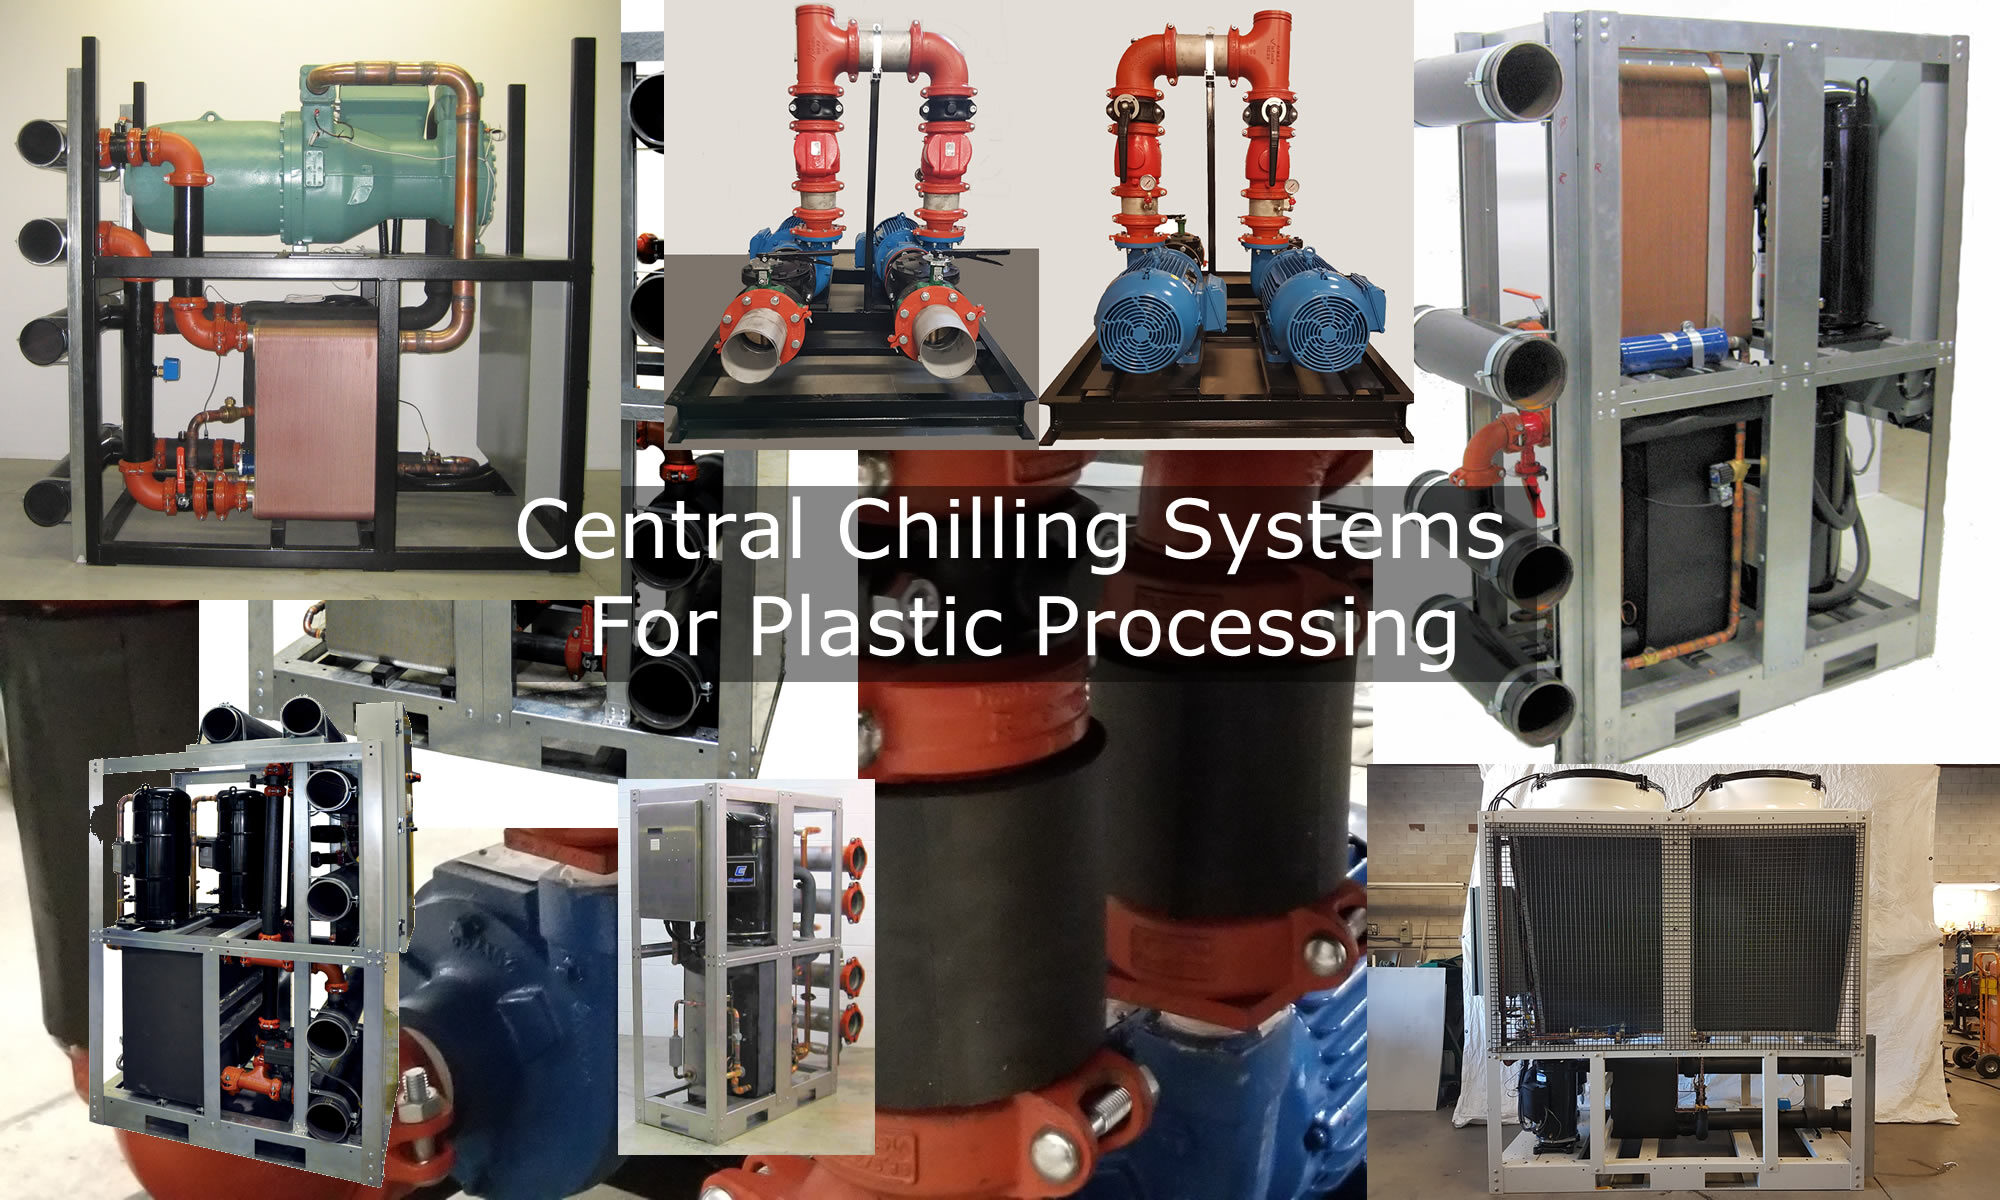 Central Chilling Systems For Plastic Processing